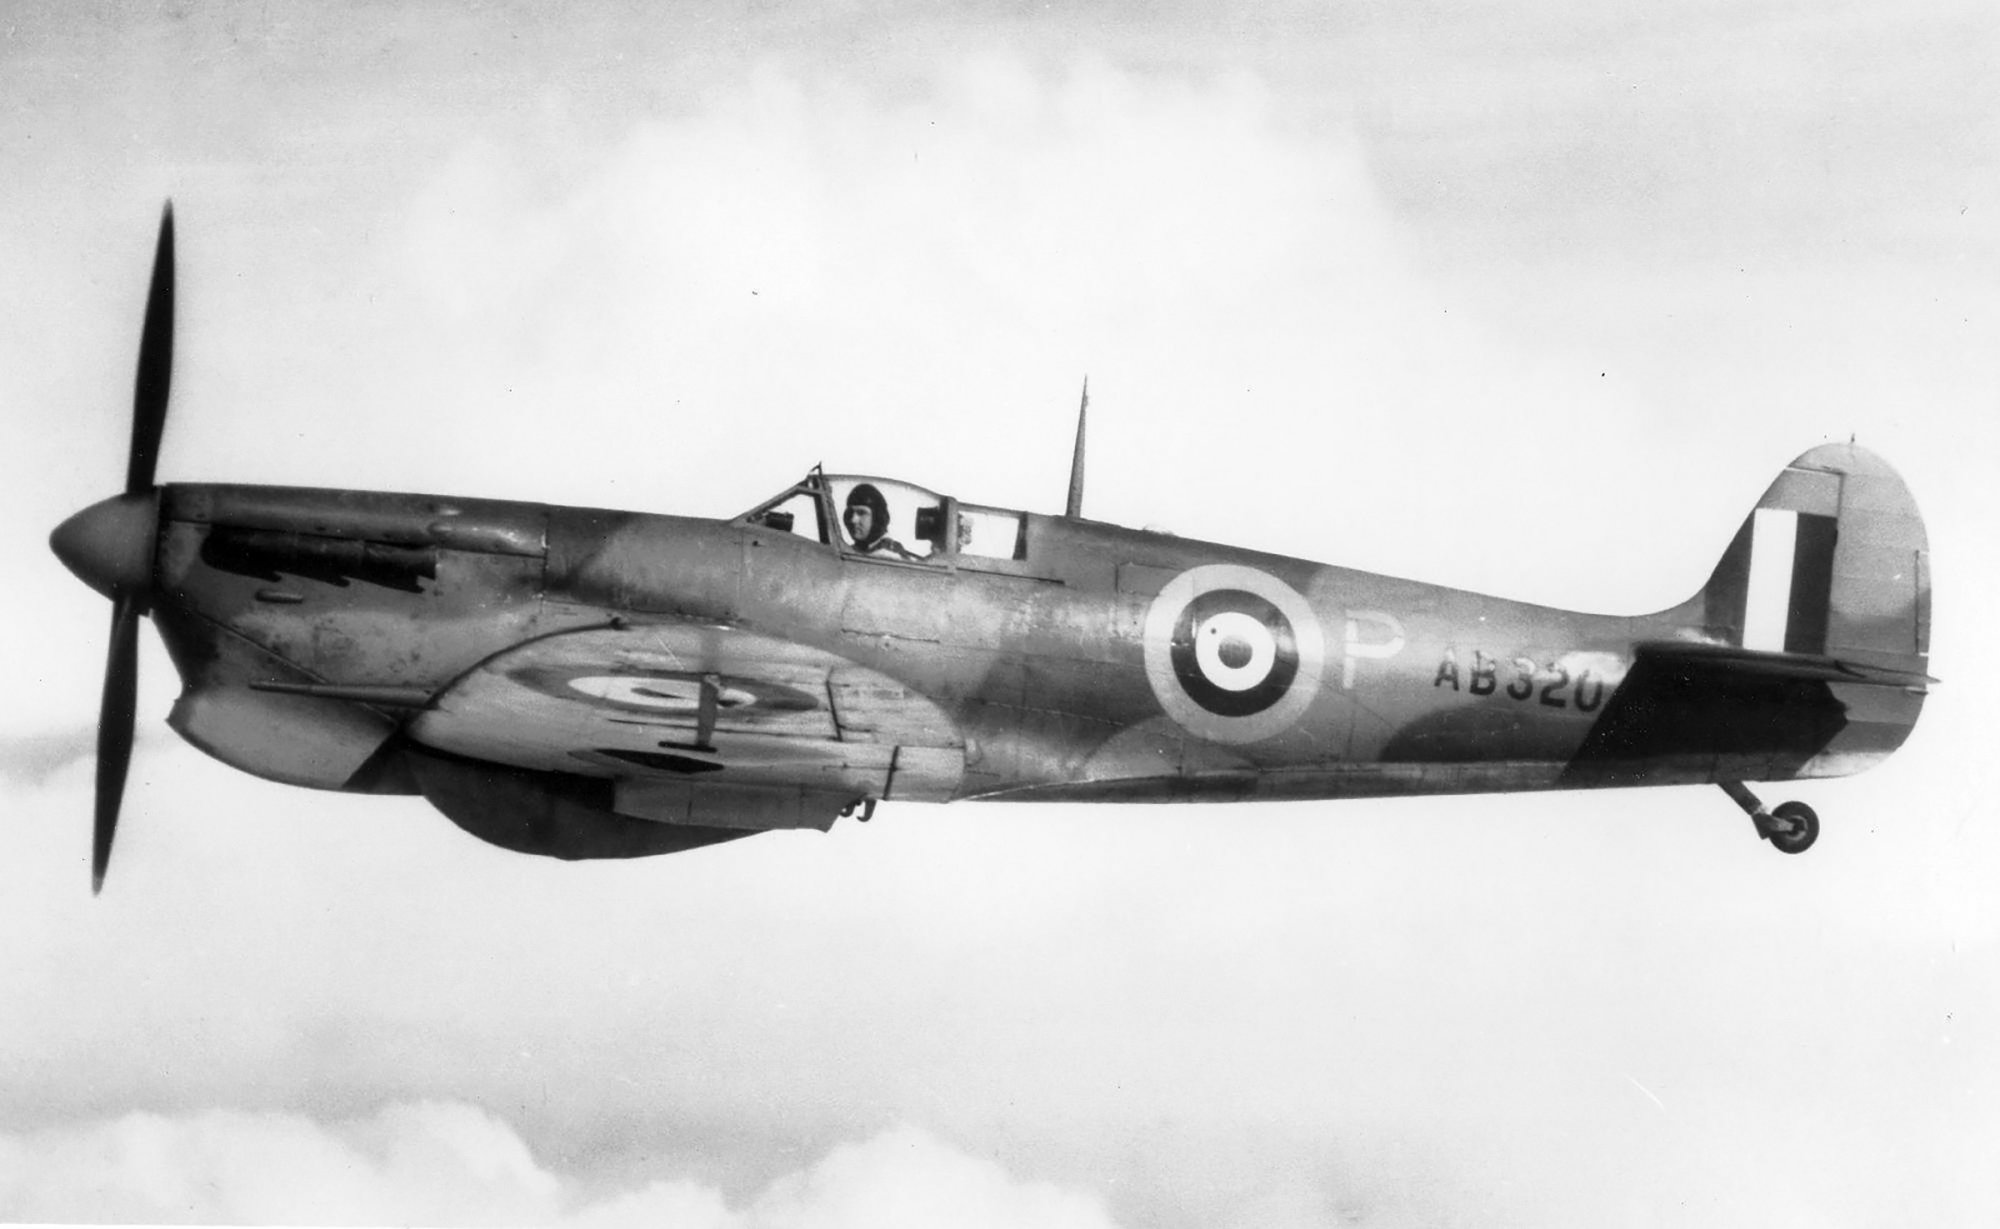 Spitfire 5b Trop Proyotype AB320 during air trials 01